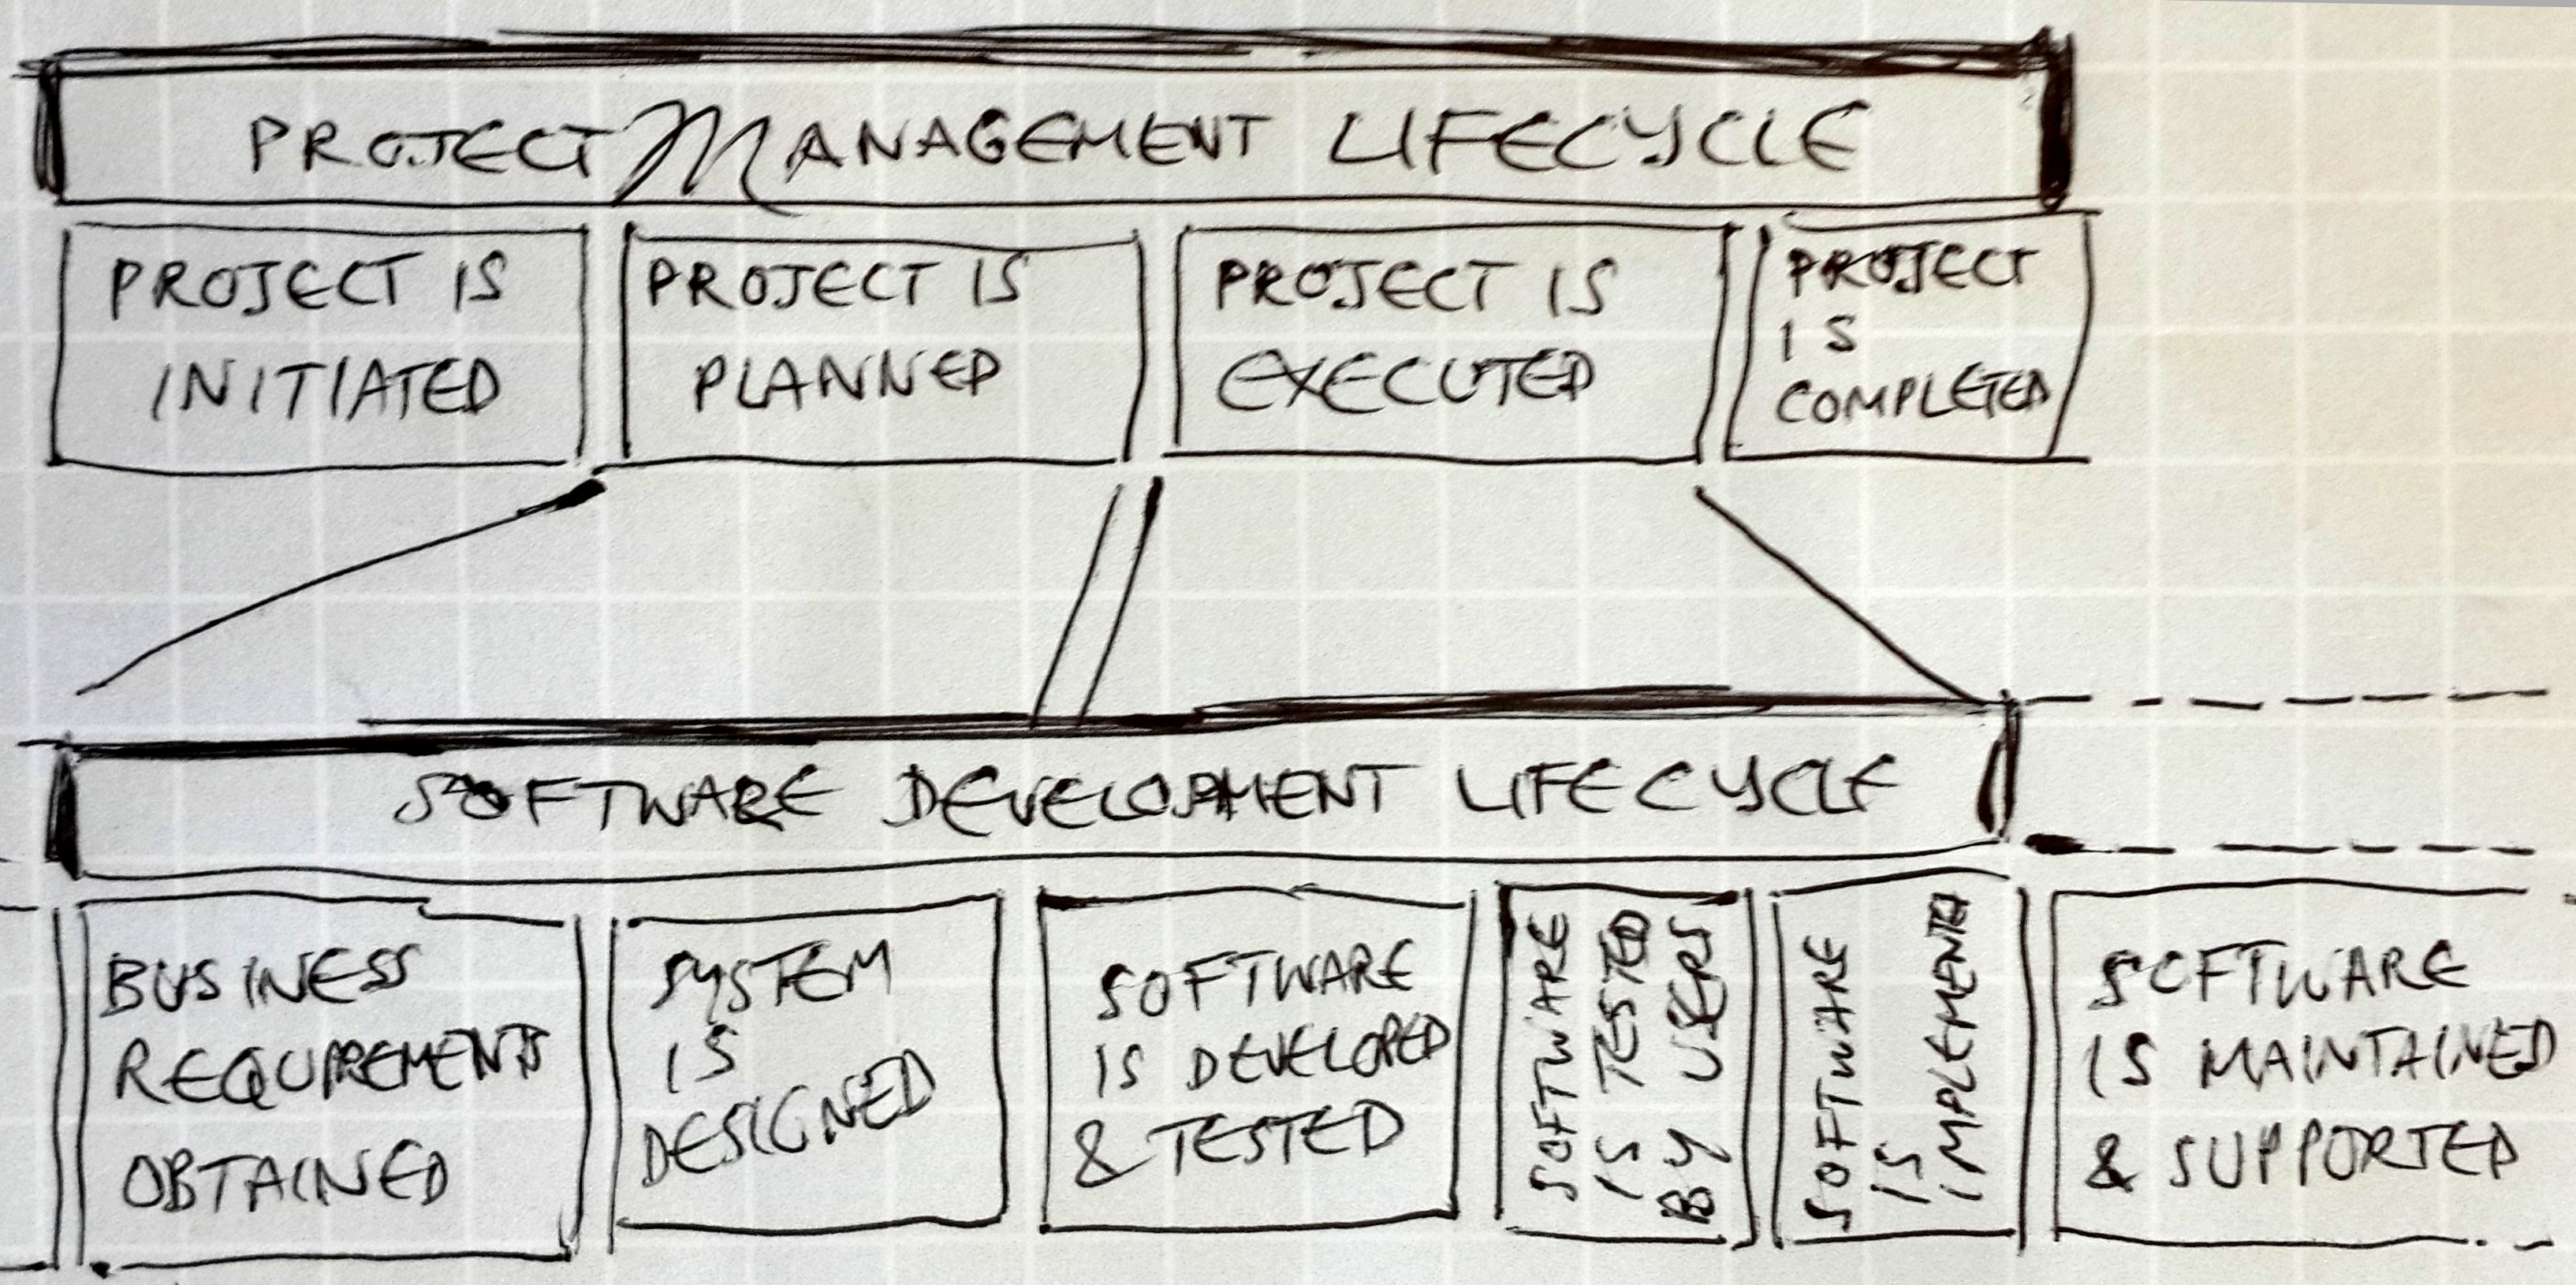 SDLC and Project Management lifecycle